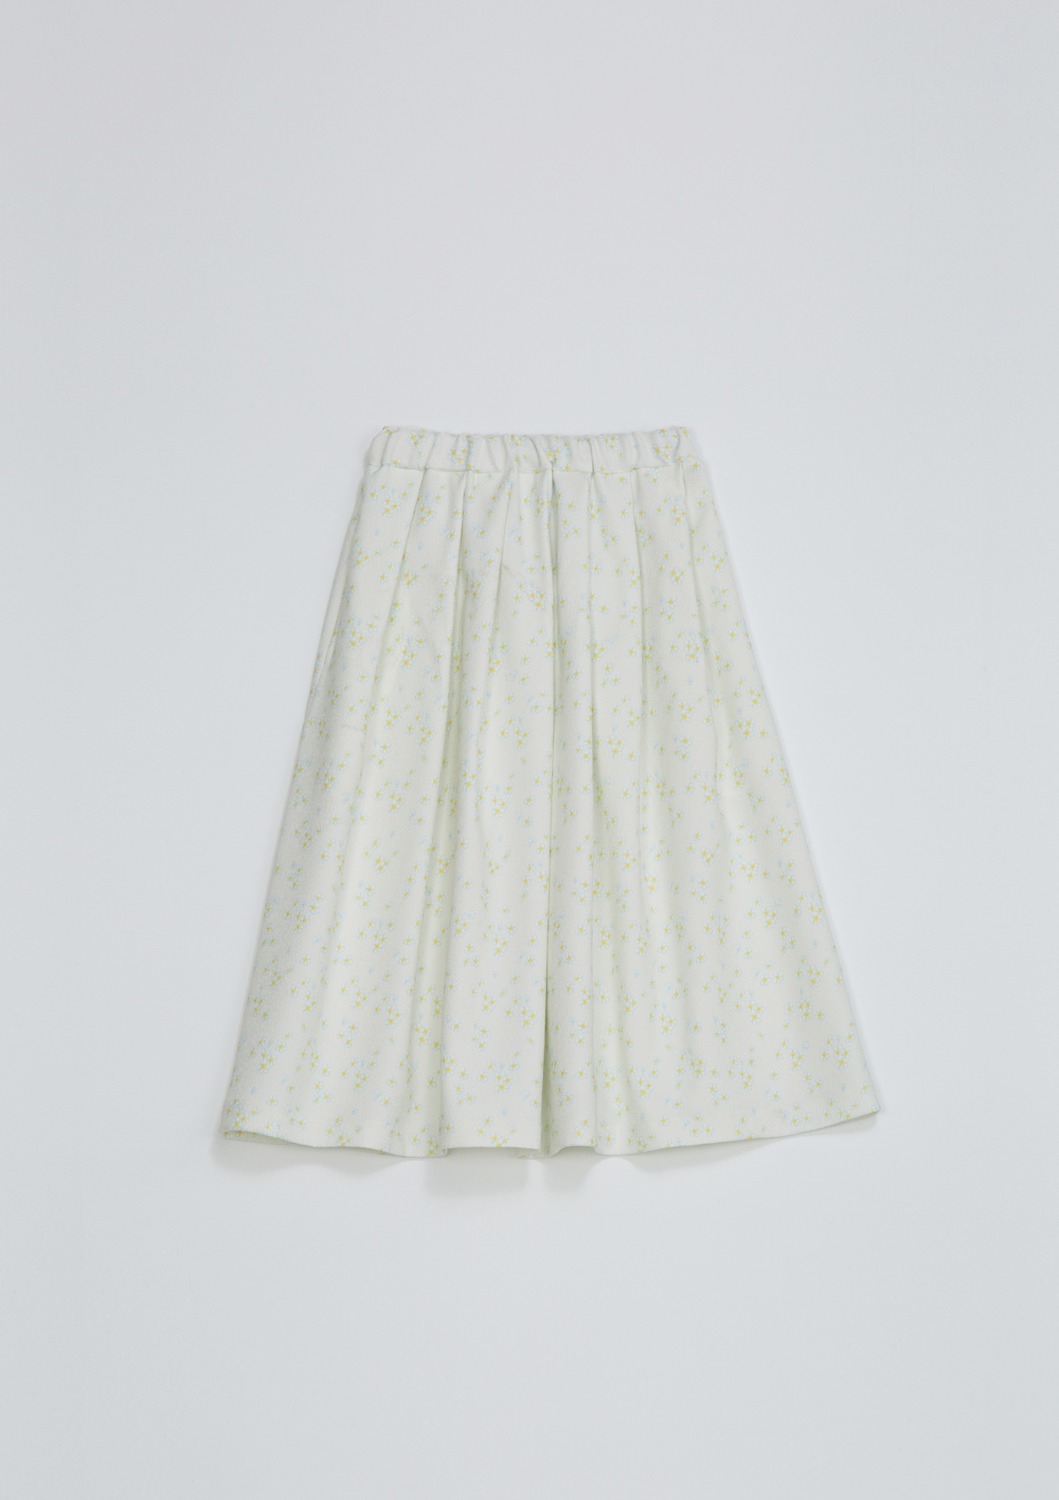 Layla Skirt - Ivory Floral Artwork